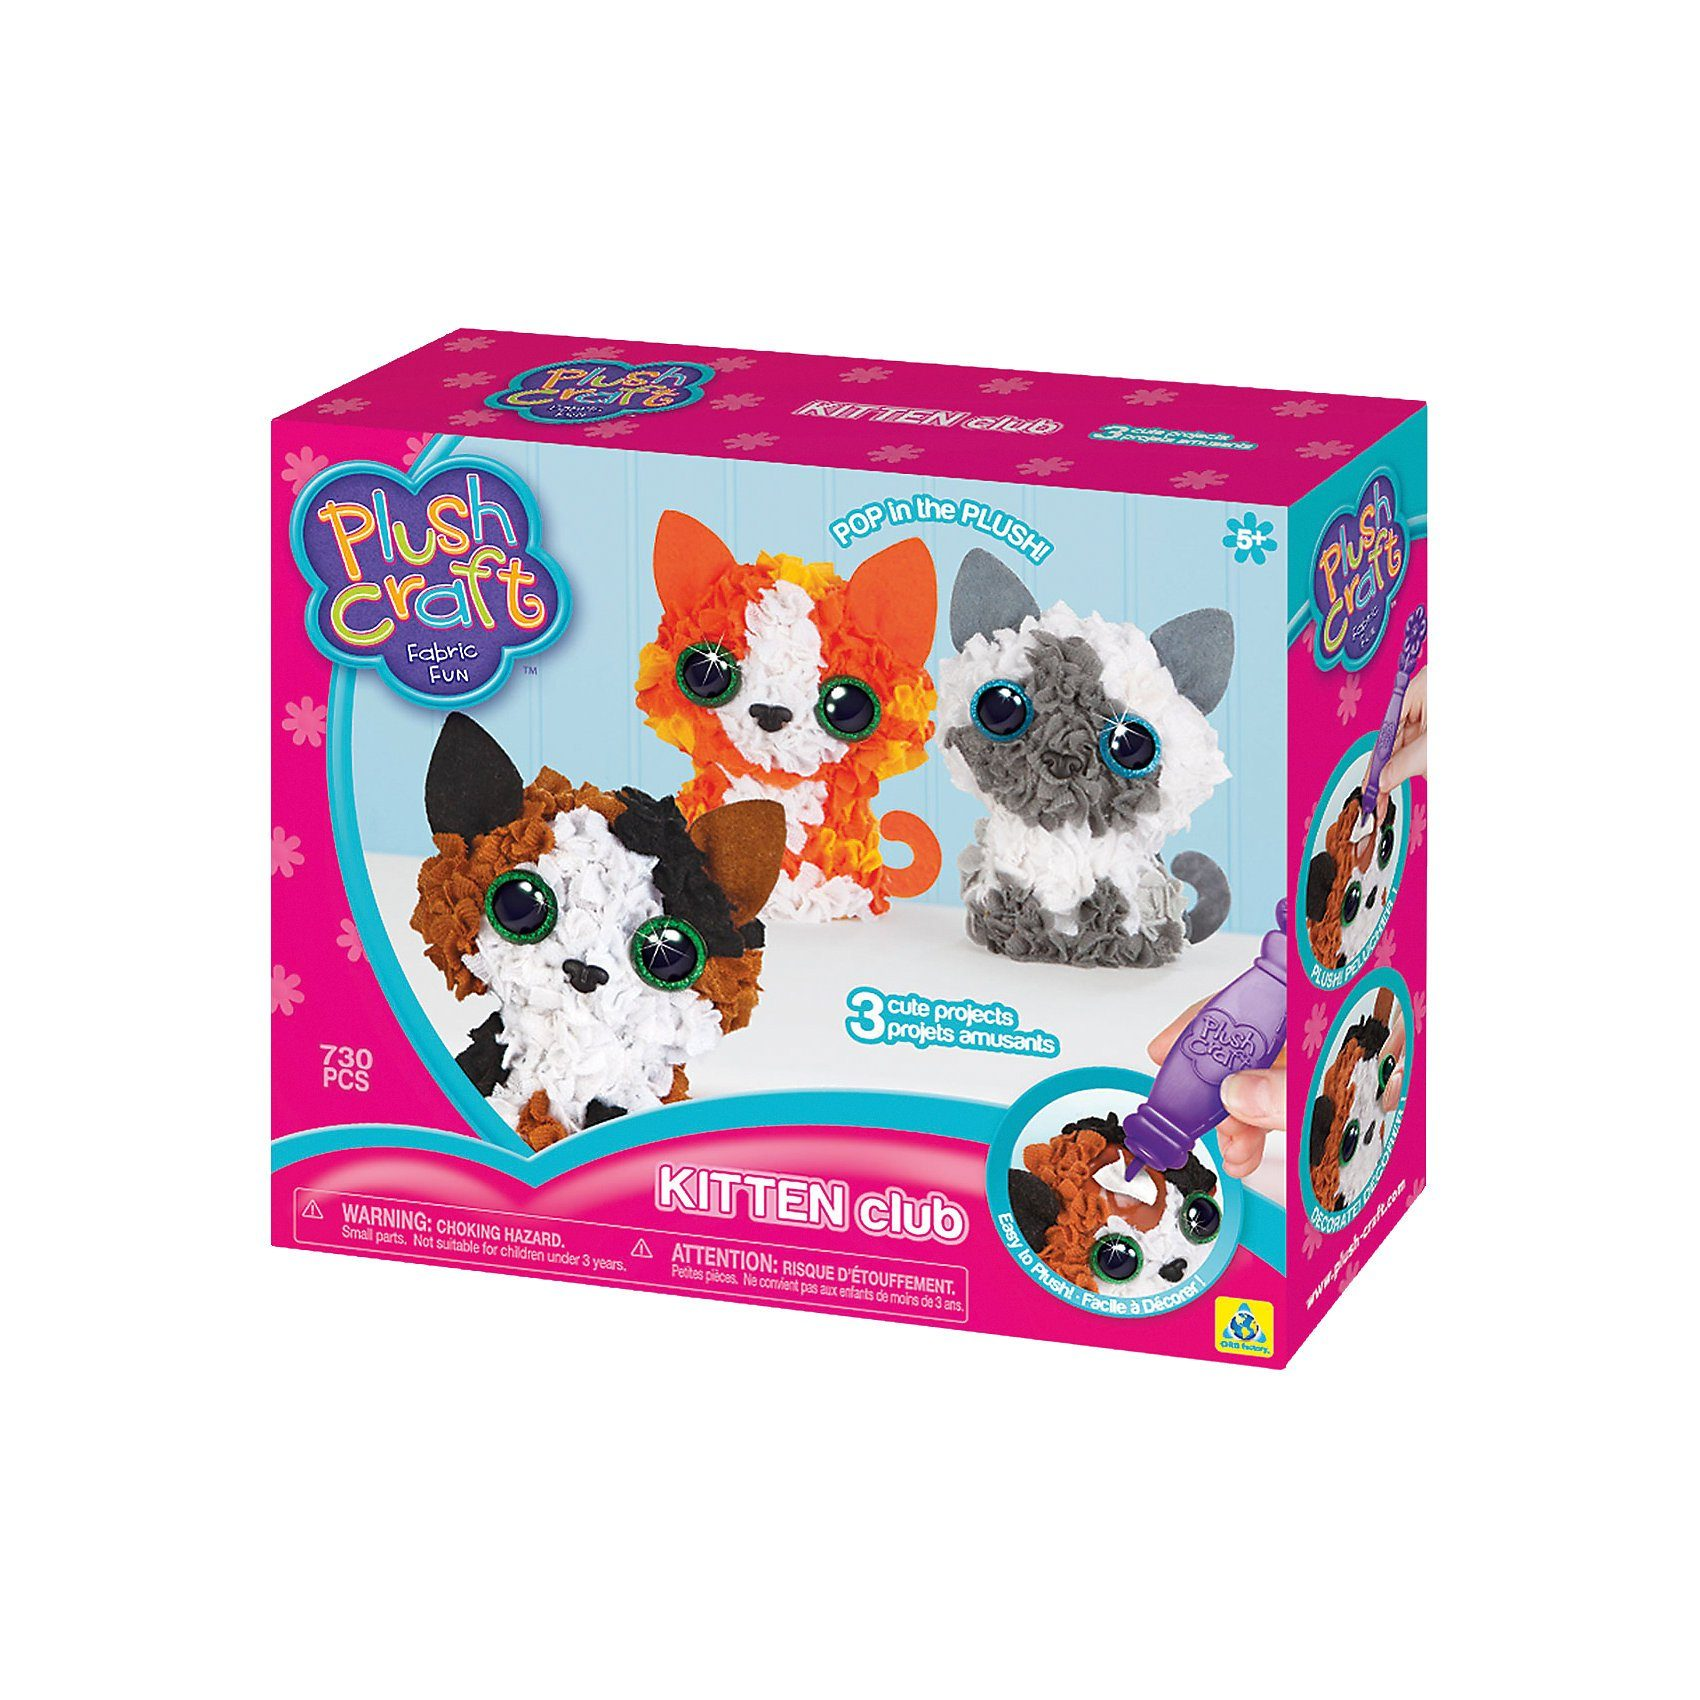 PlushCraft 3D-Mini-Figuren Kätzchen (Kitten Club)